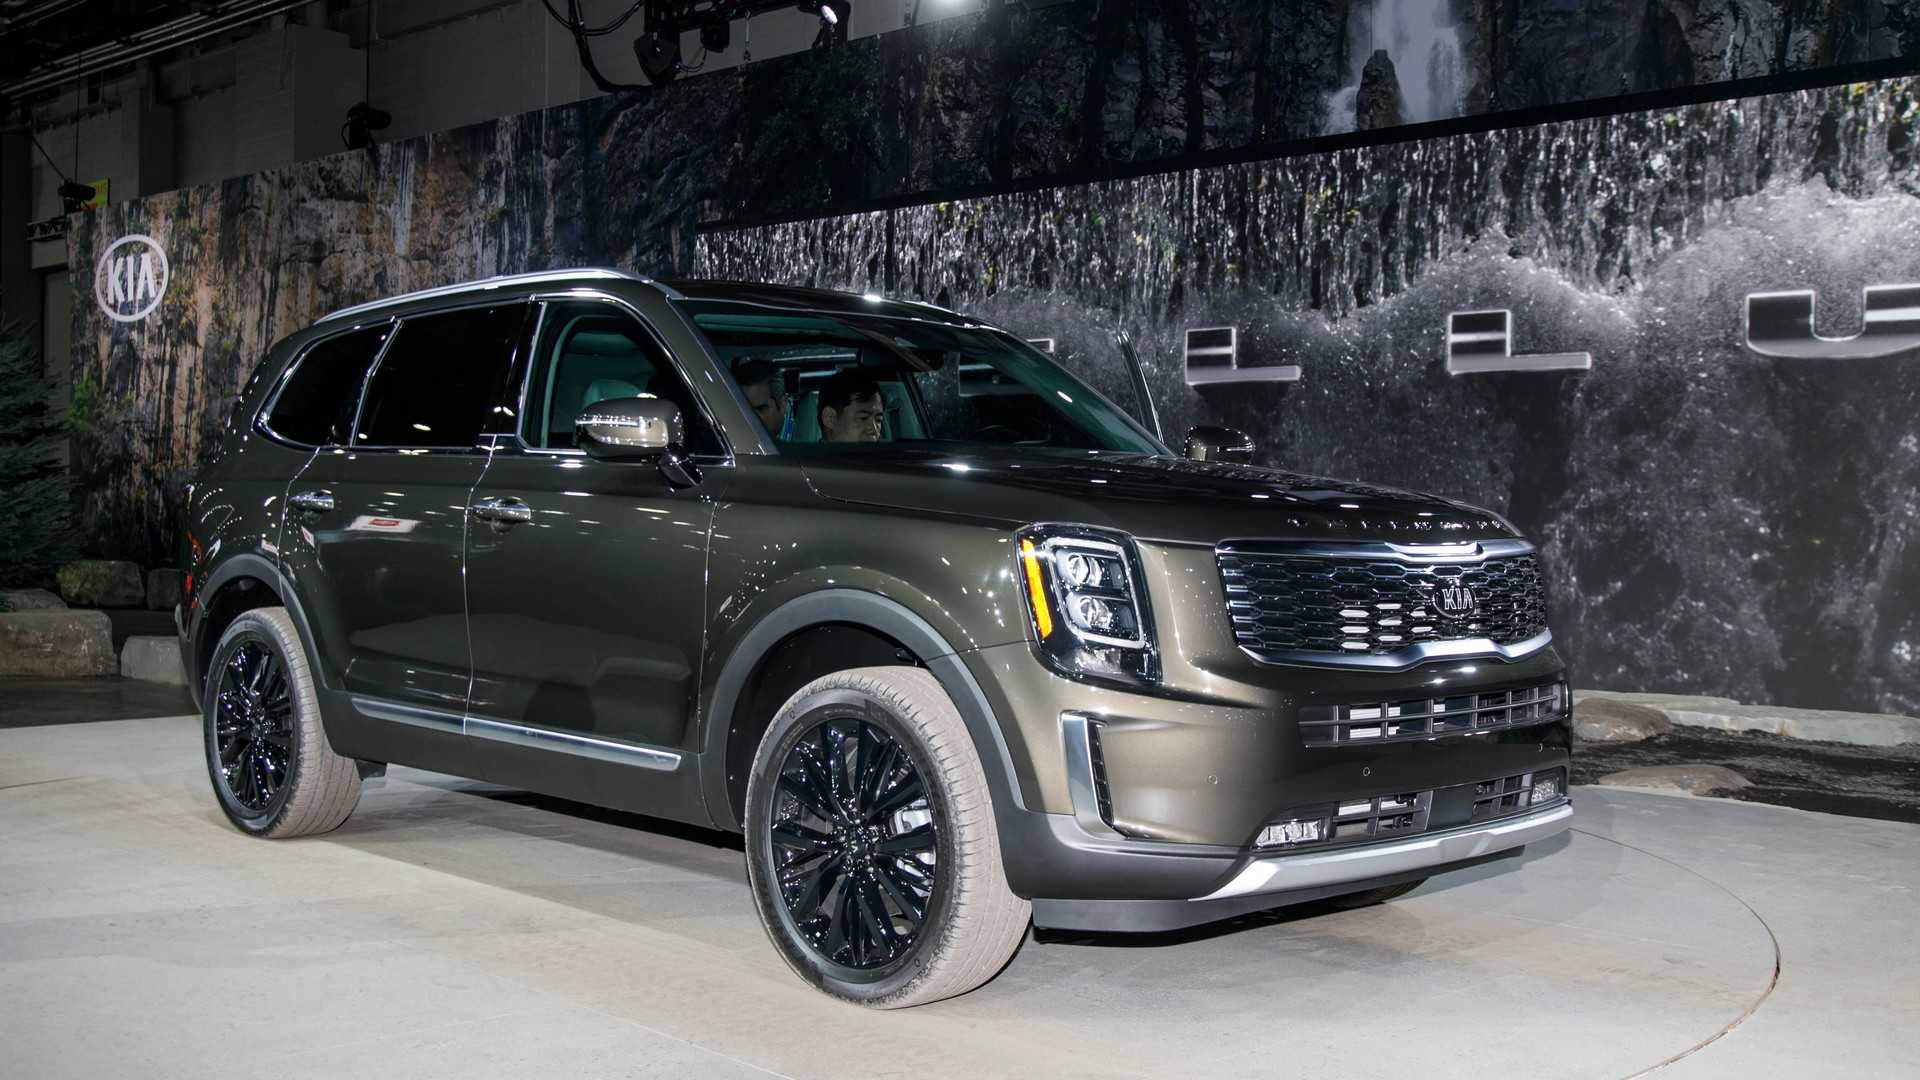 56 Great 2020 Kia Telluride Black Copper Wallpaper for 2020 Kia Telluride Black Copper